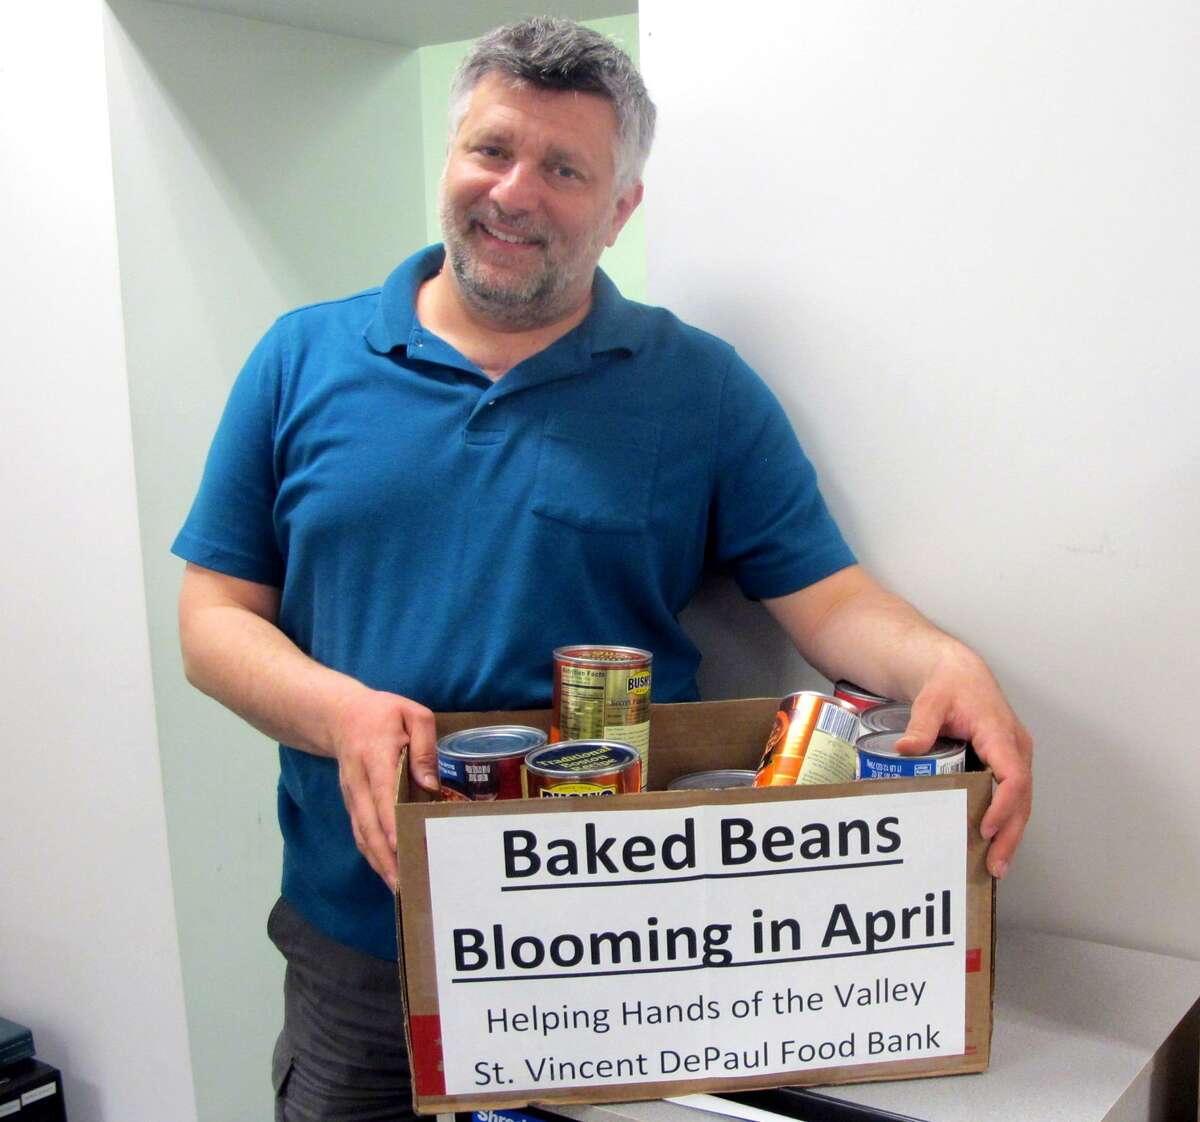 City/Town Clerk Marc Garofalo, a former four-term Derby mayor, was instrumental in creating the monthly City Hall food drive for St. Vincent De Paul's food bank. This month they are collecting cans of clear broth and packages of saltines.